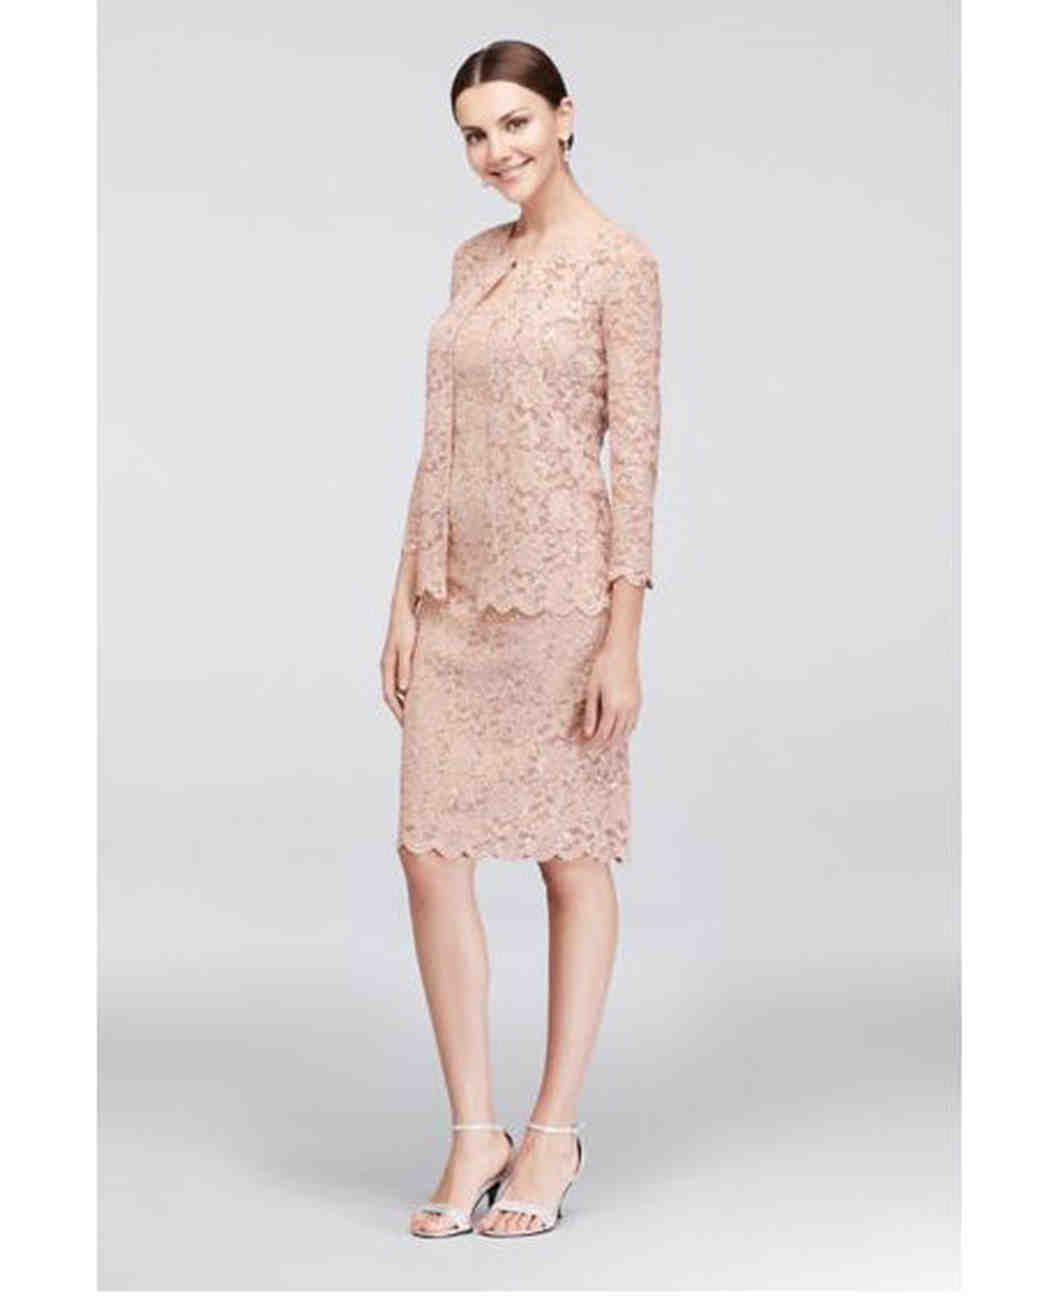 The Prettiest Pink Mother-of-the-Bride and-Groom Dresses  43a9a356e